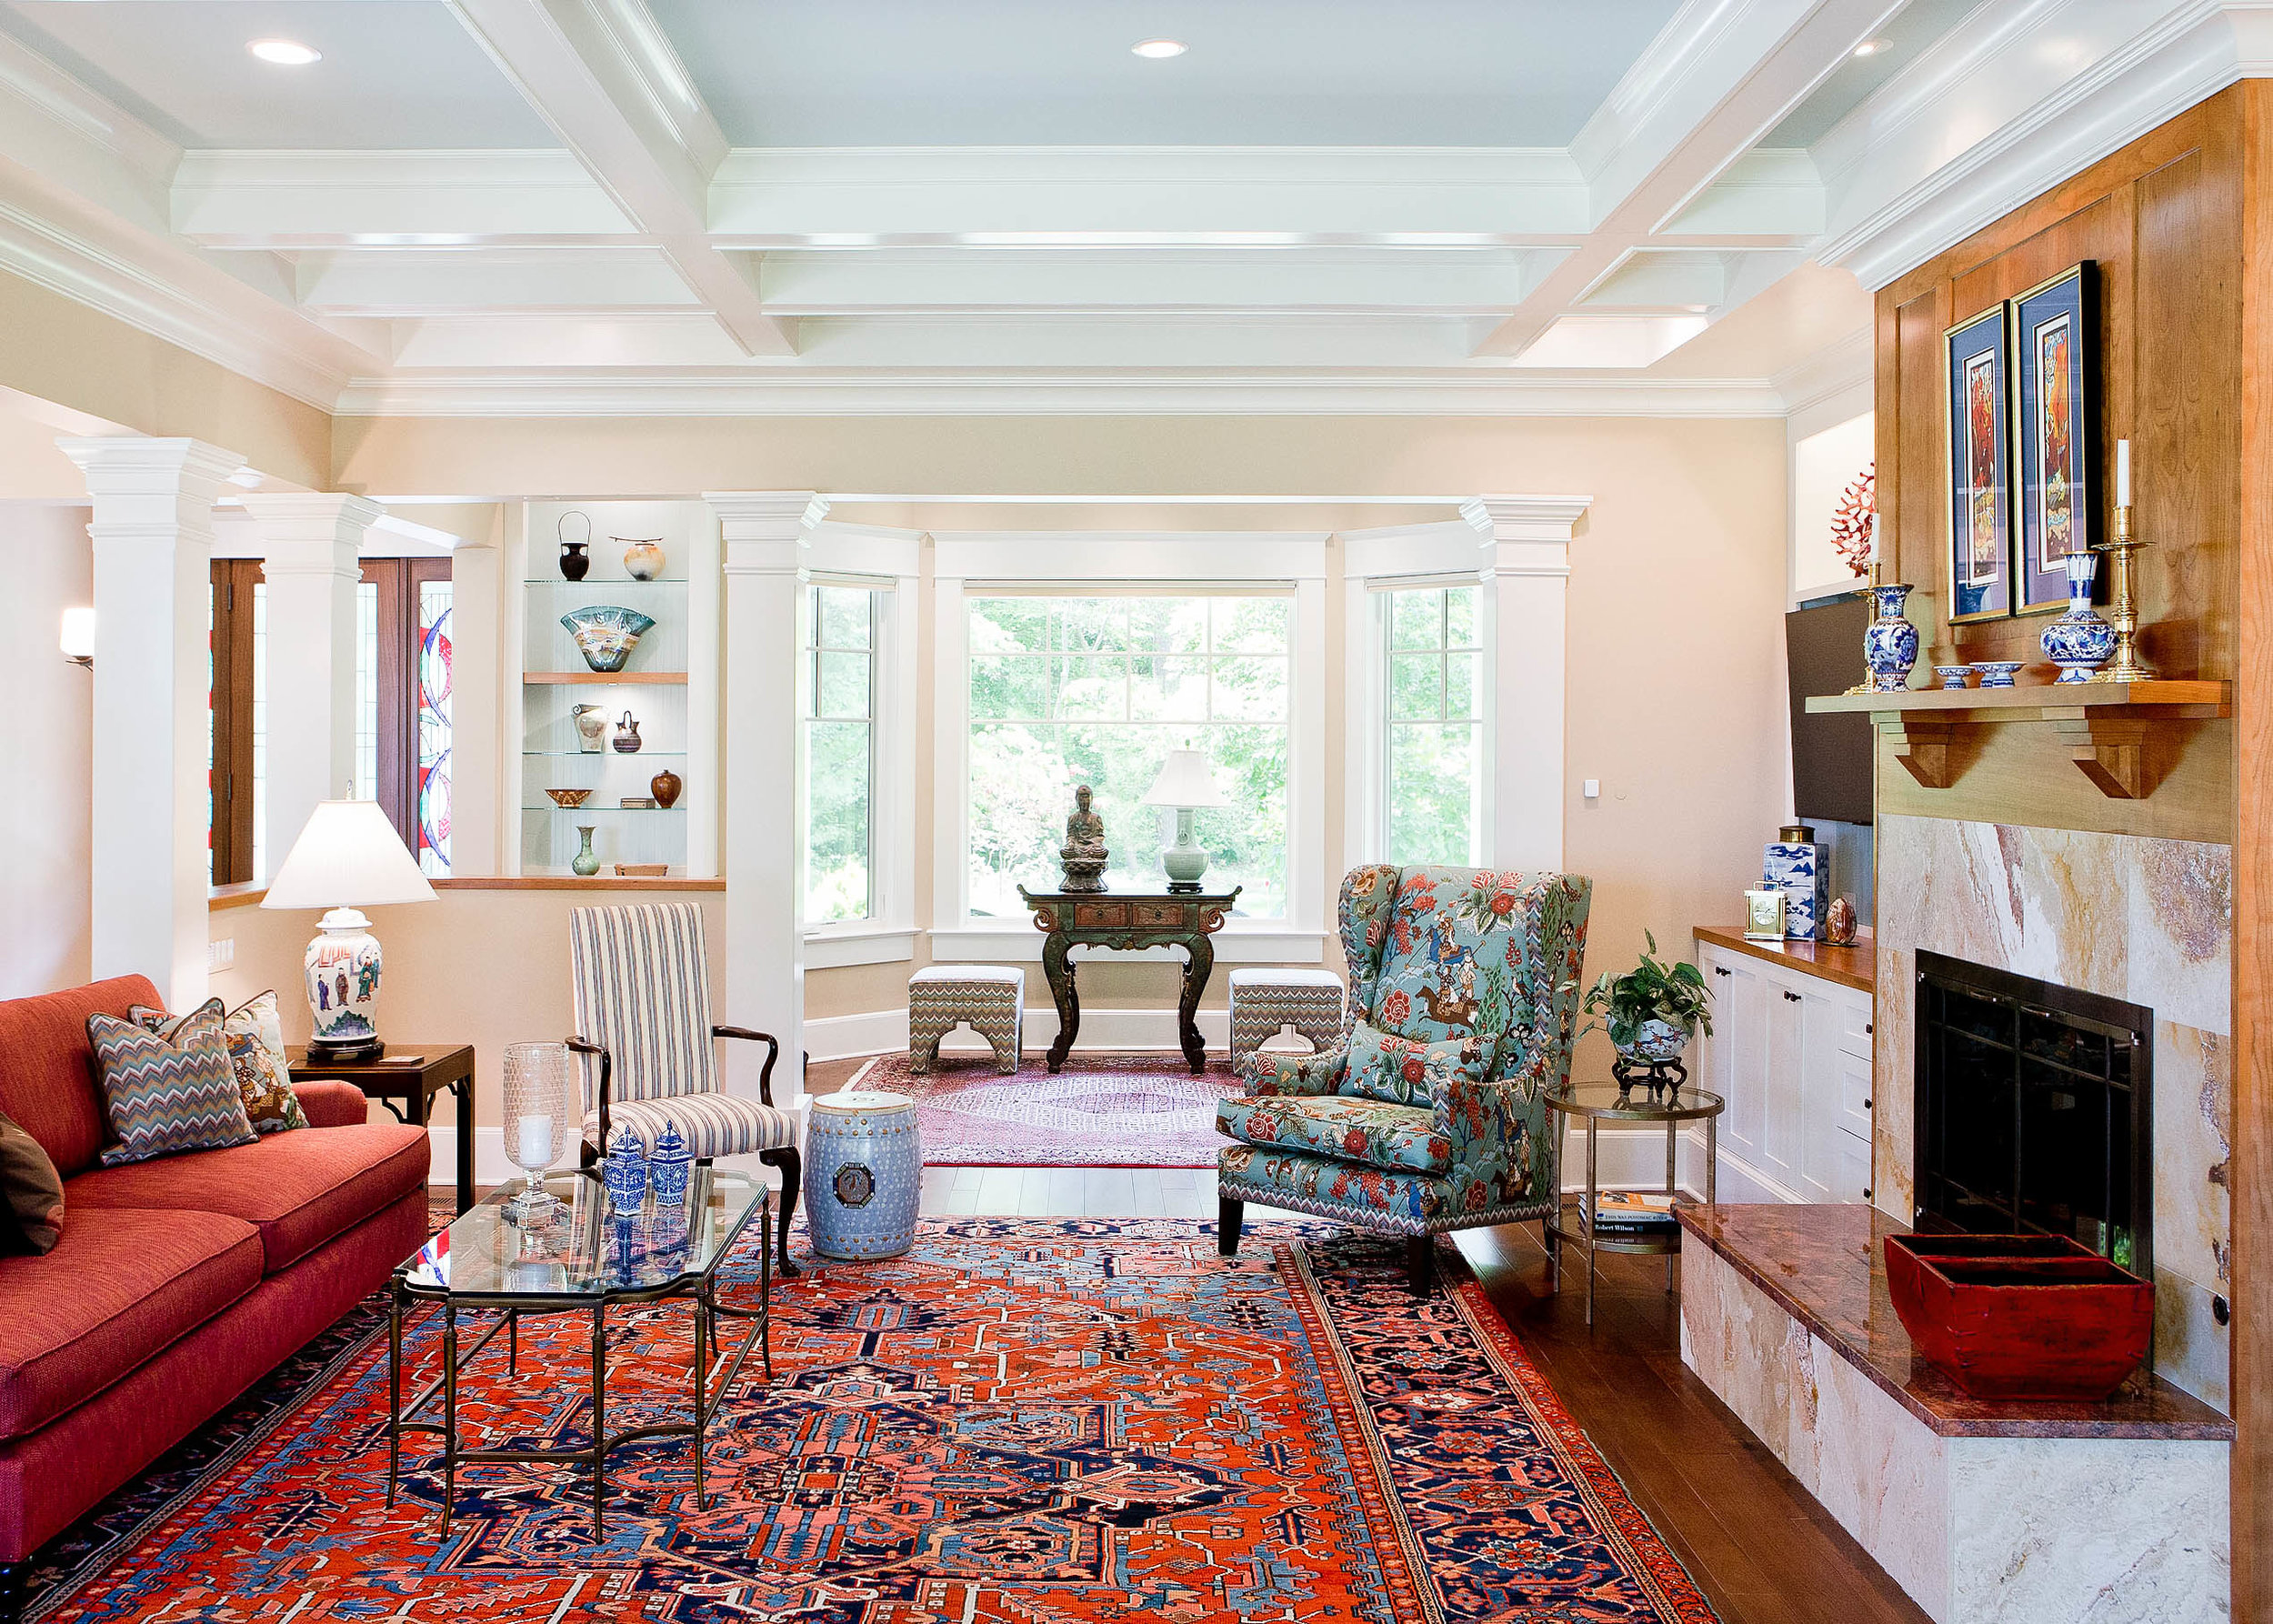 Our client's home is on the Potomac River, outside of Alexandria, Virginia. We designed a functional space for entertaining family and friends in their open floor plan Northern Virginia home.